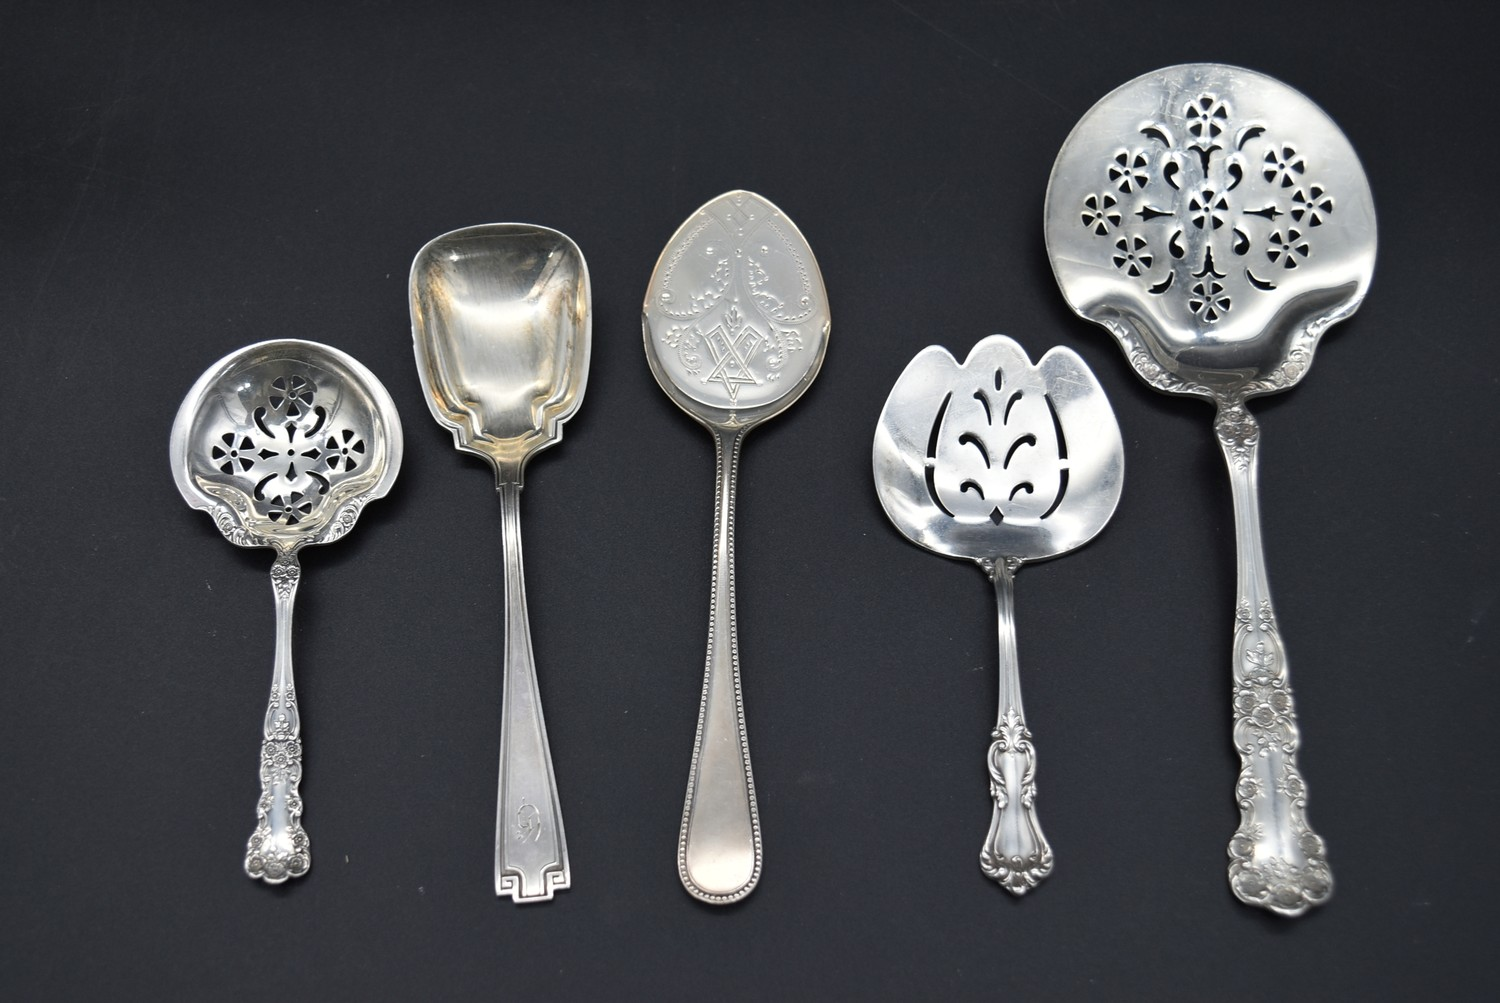 A collection of five 19th century and later English silver spoons along with a silver toast rack, - Image 2 of 6